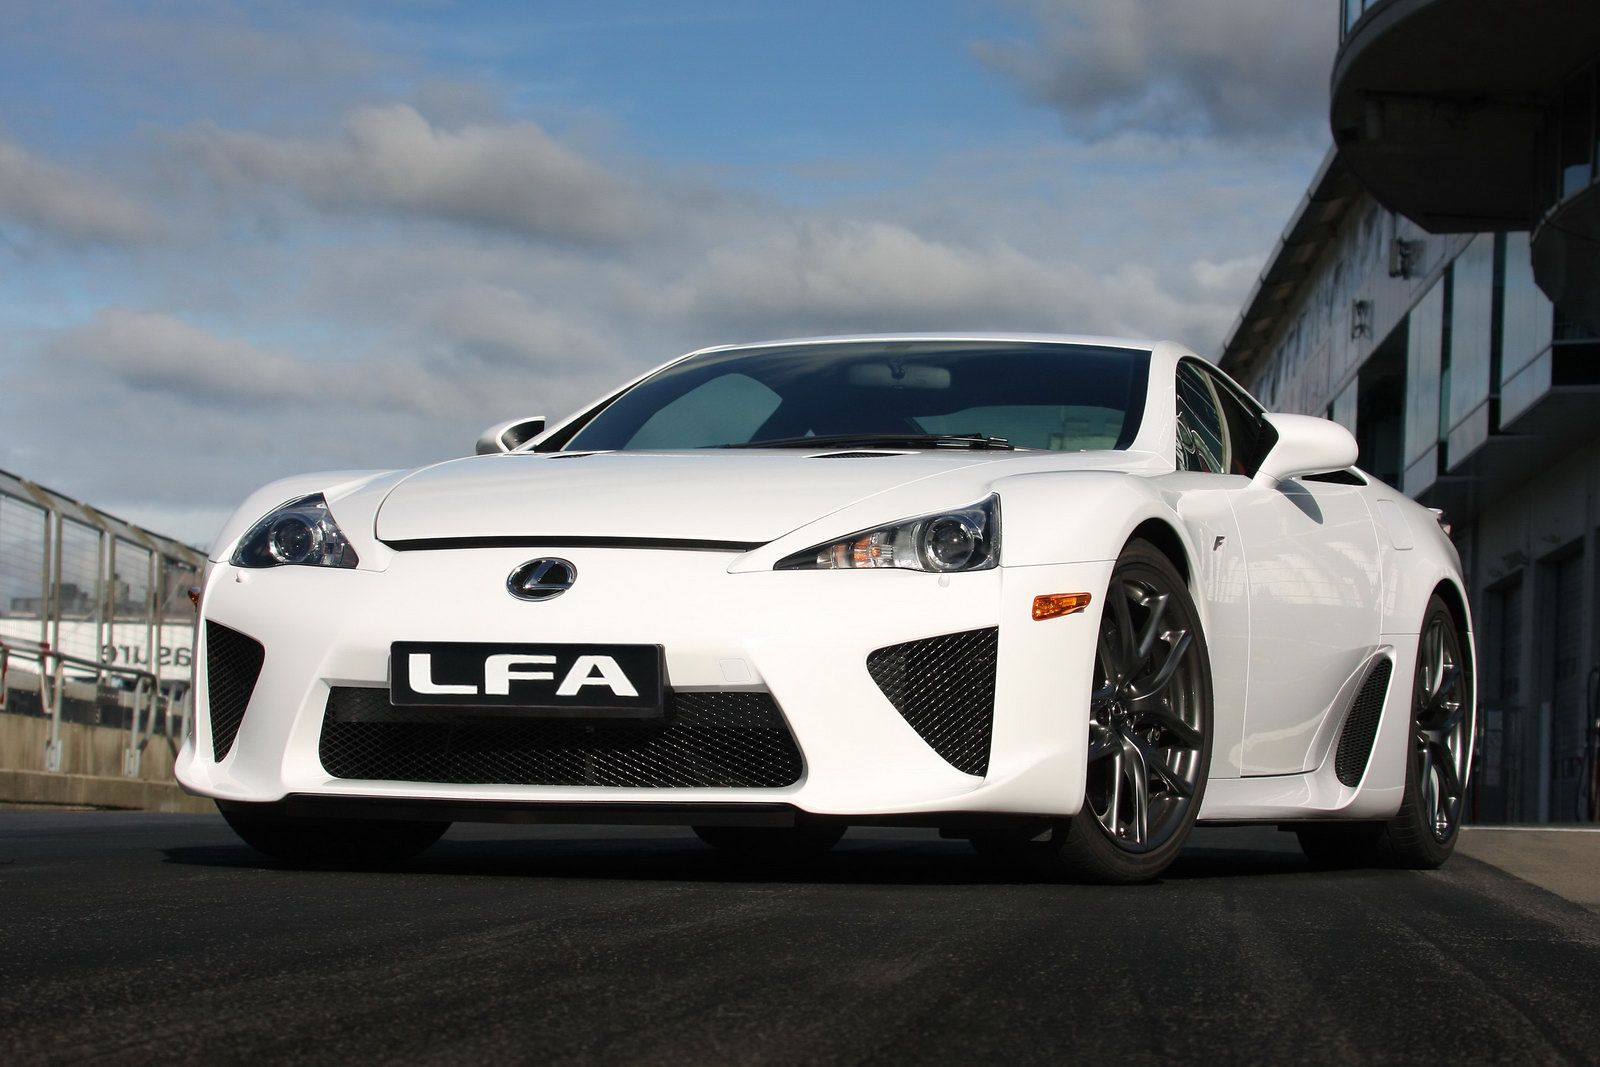 new 2010 lexus lfa supercar officially revealed photos. Black Bedroom Furniture Sets. Home Design Ideas